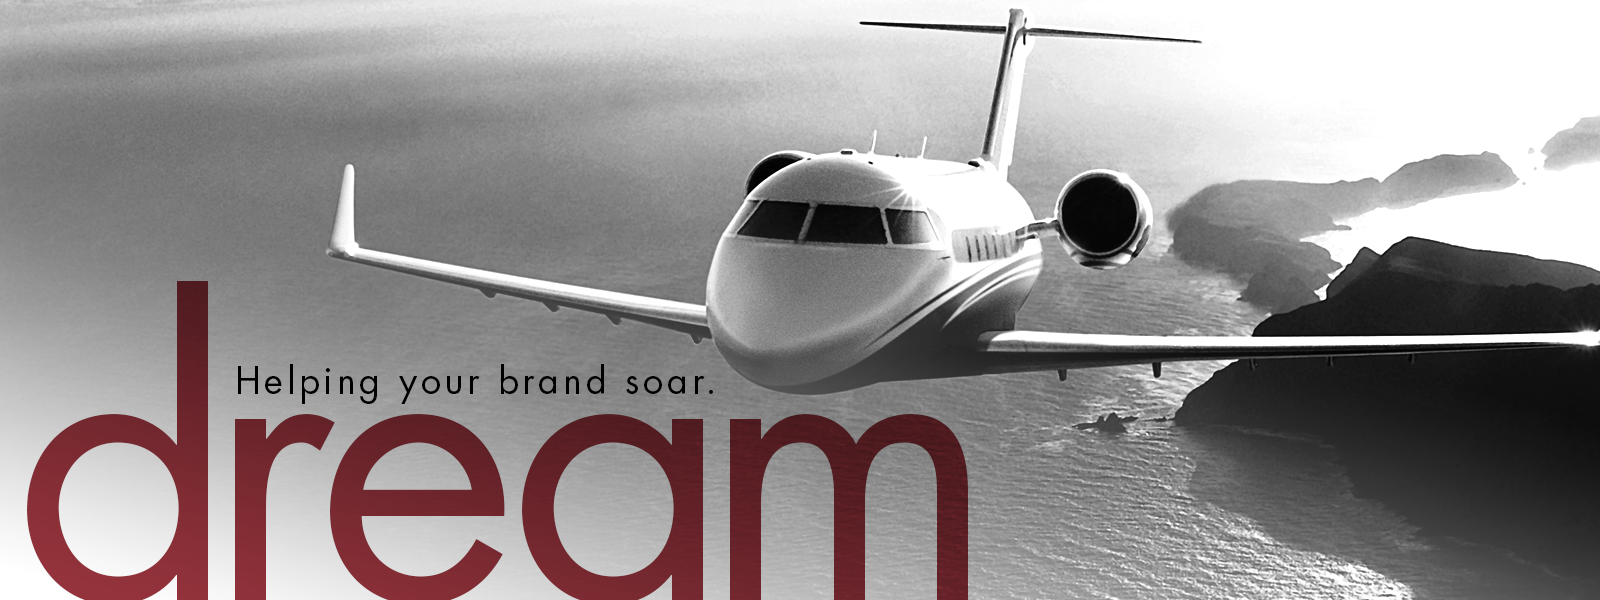 Helping your brand soar. dream